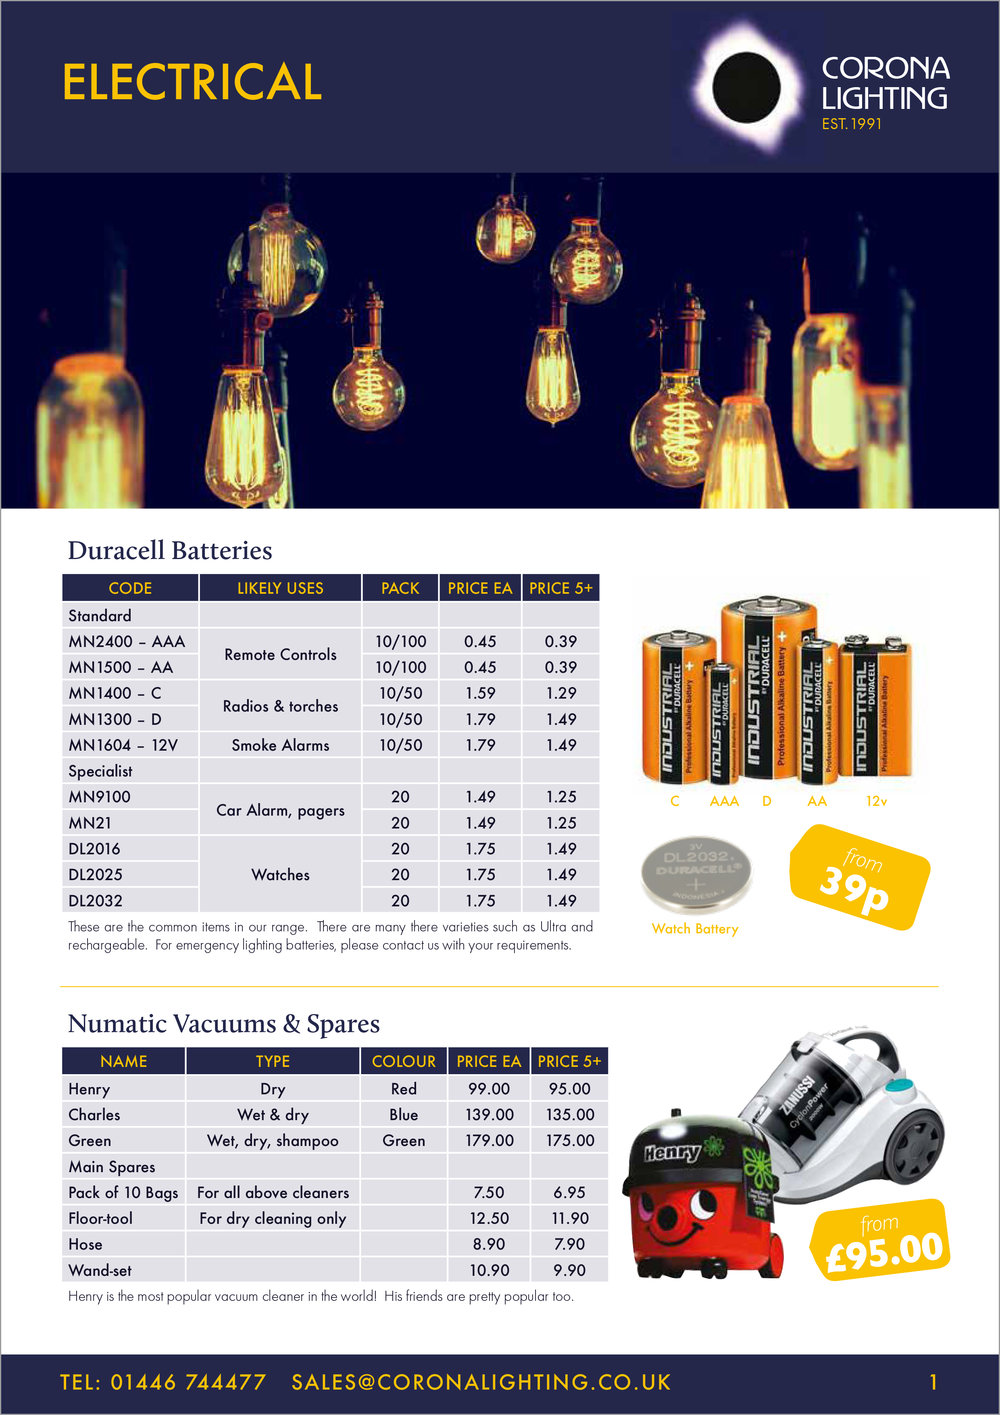 Corona_Brochure_Electrical_D.jpg